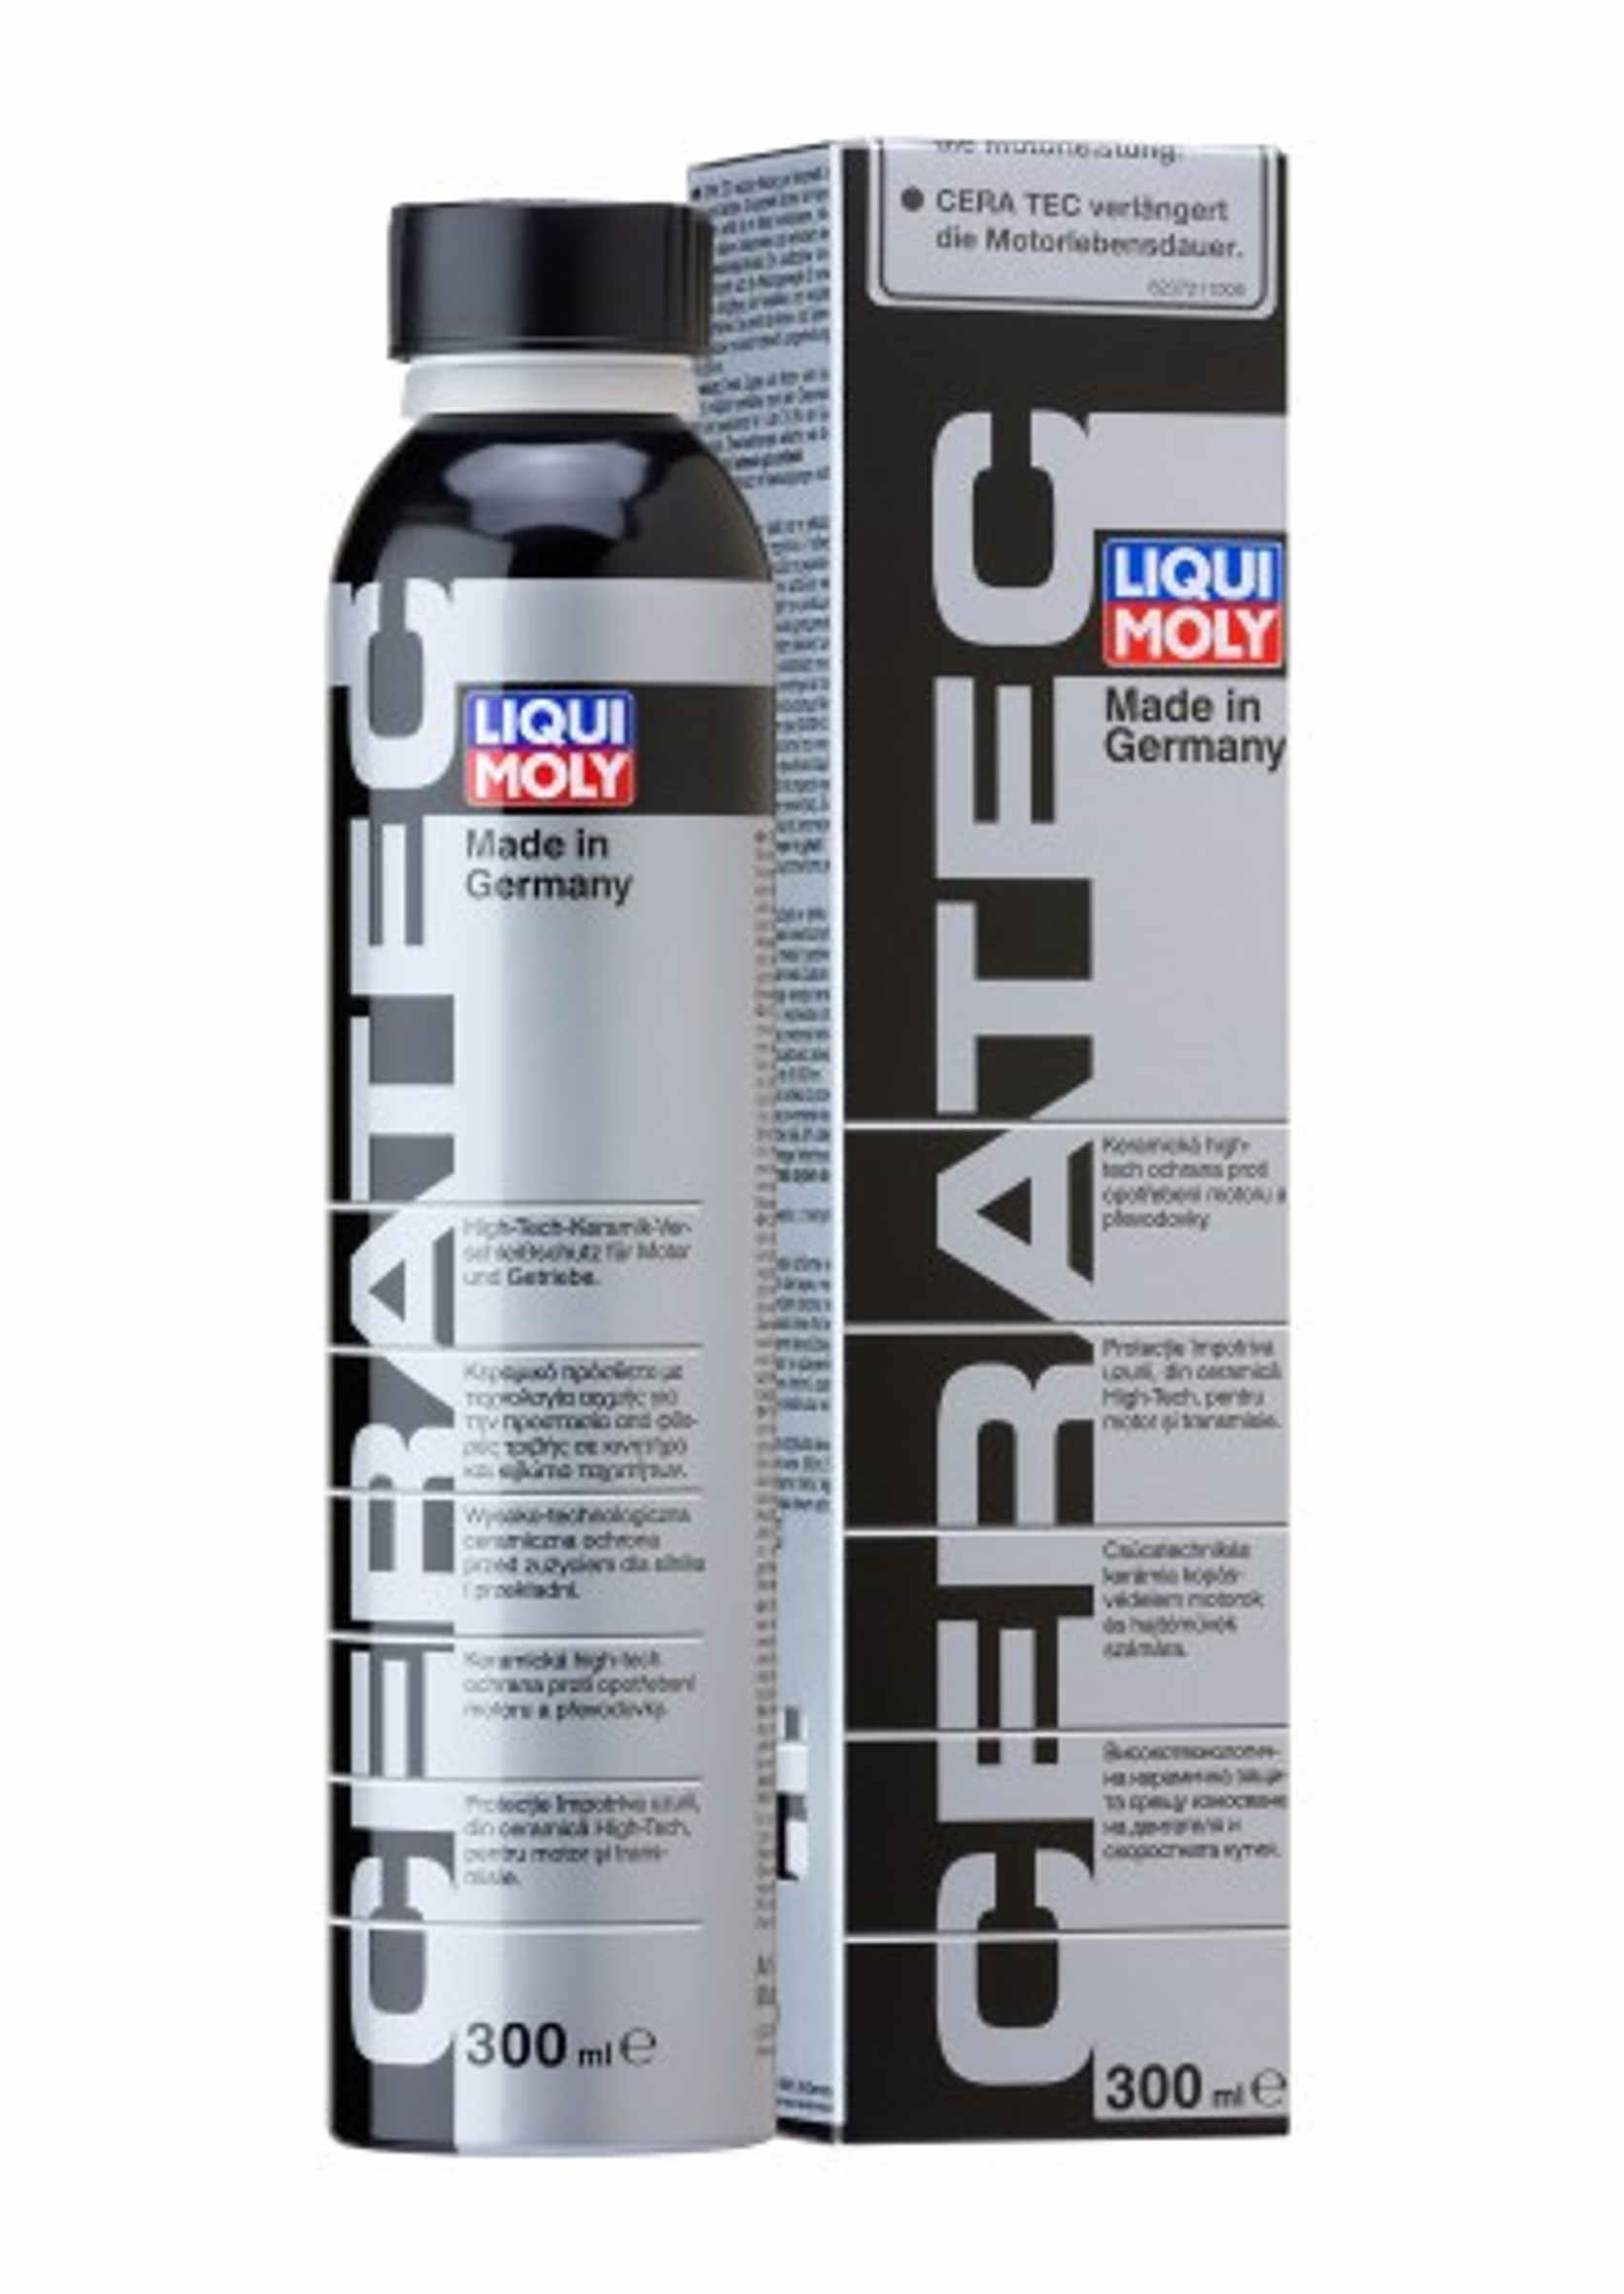 Liqui Moly 7181 Ceratec 300ml Dodatek Uszlachetniacz do Oleju